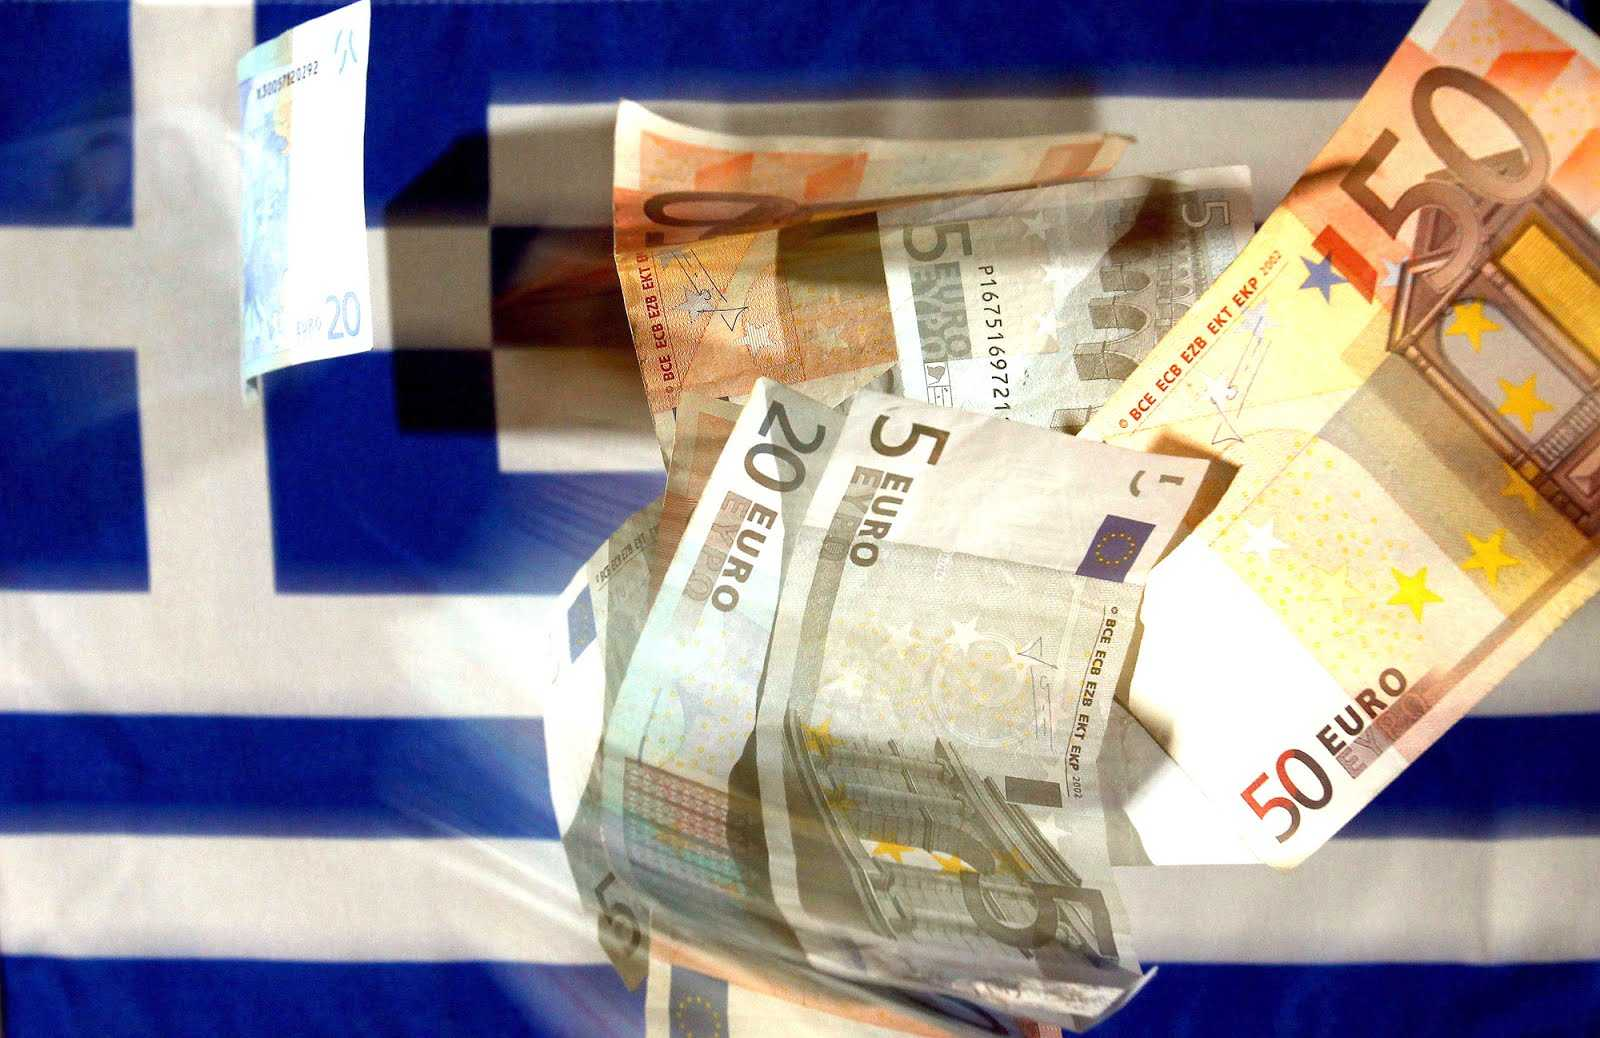 Wages in Greece continue their downward spiral